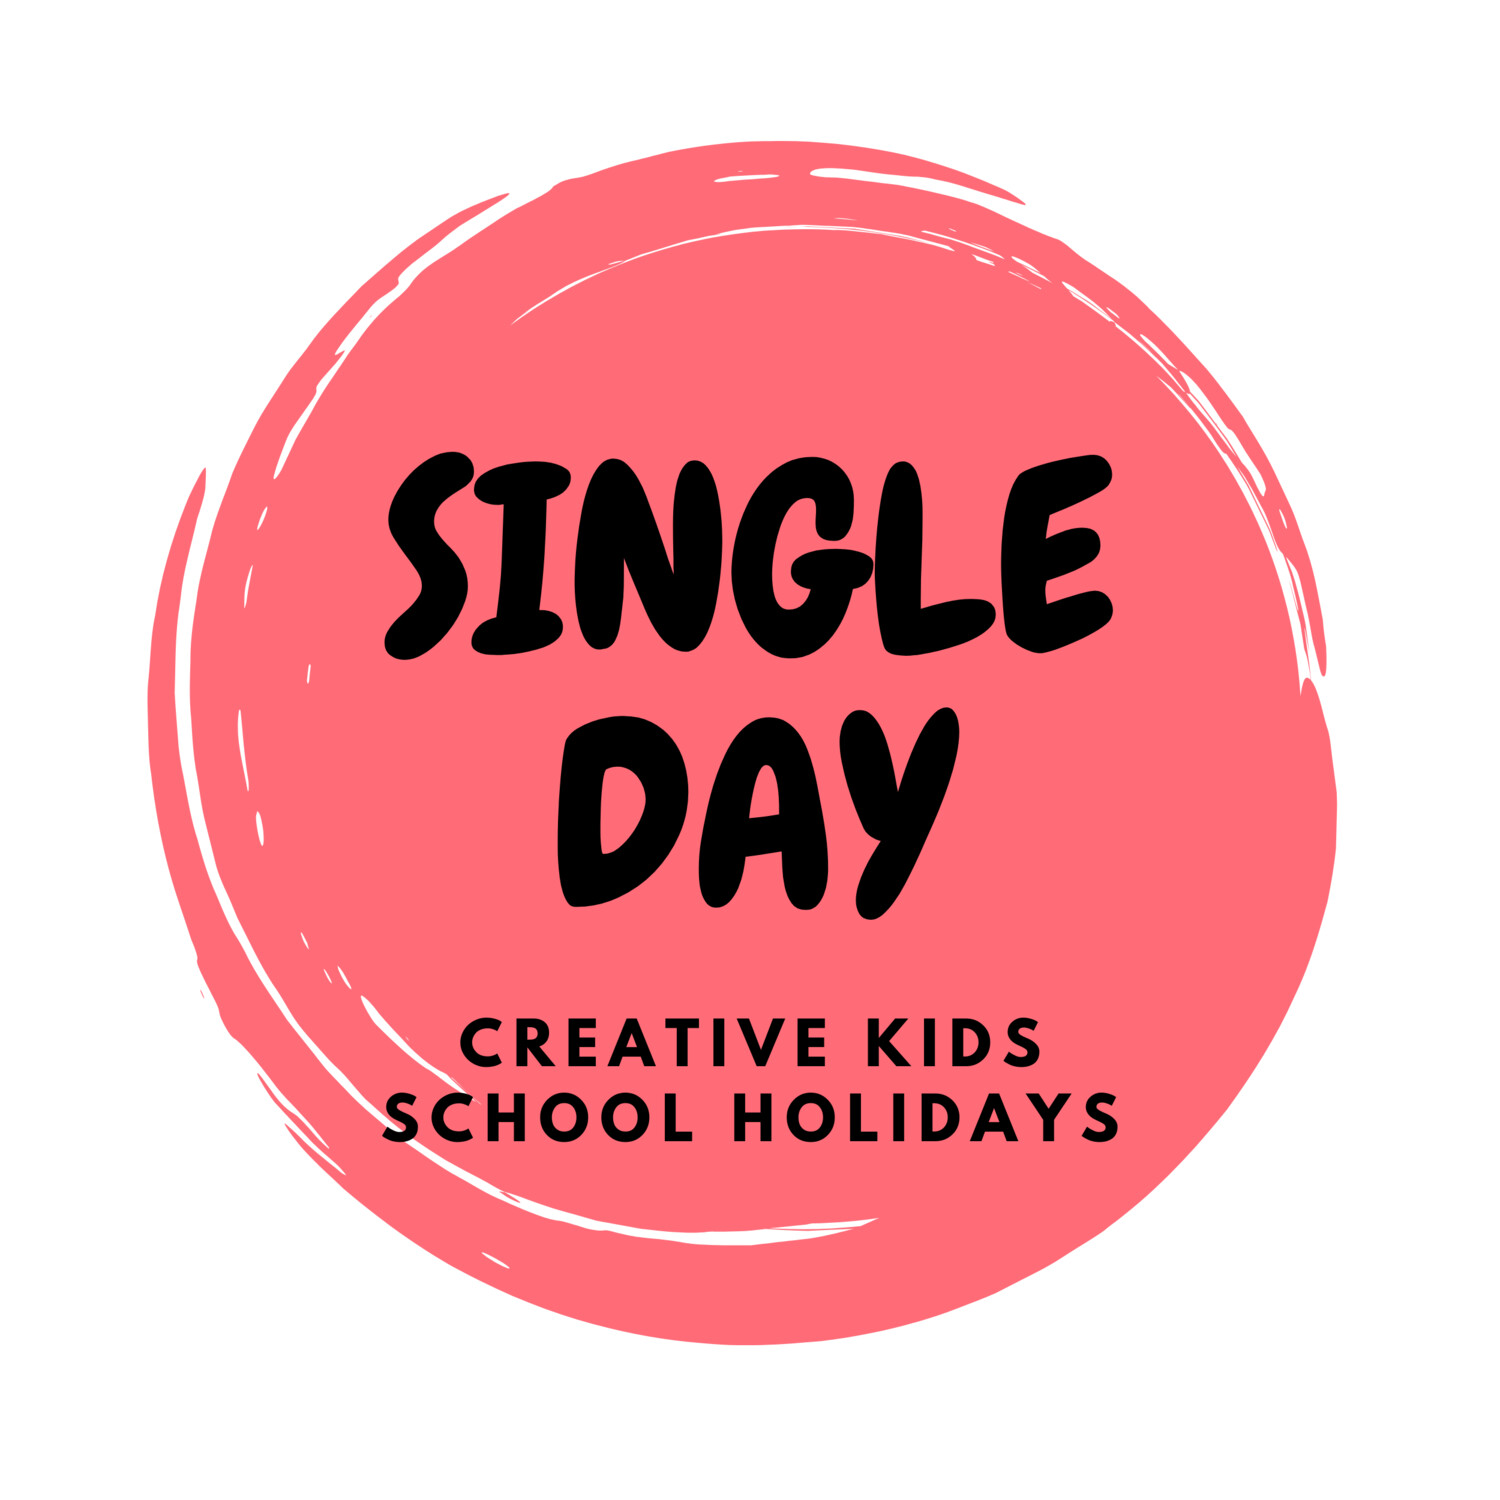 Rainbow Day - JULY 2020 School Holidays Creative Kids